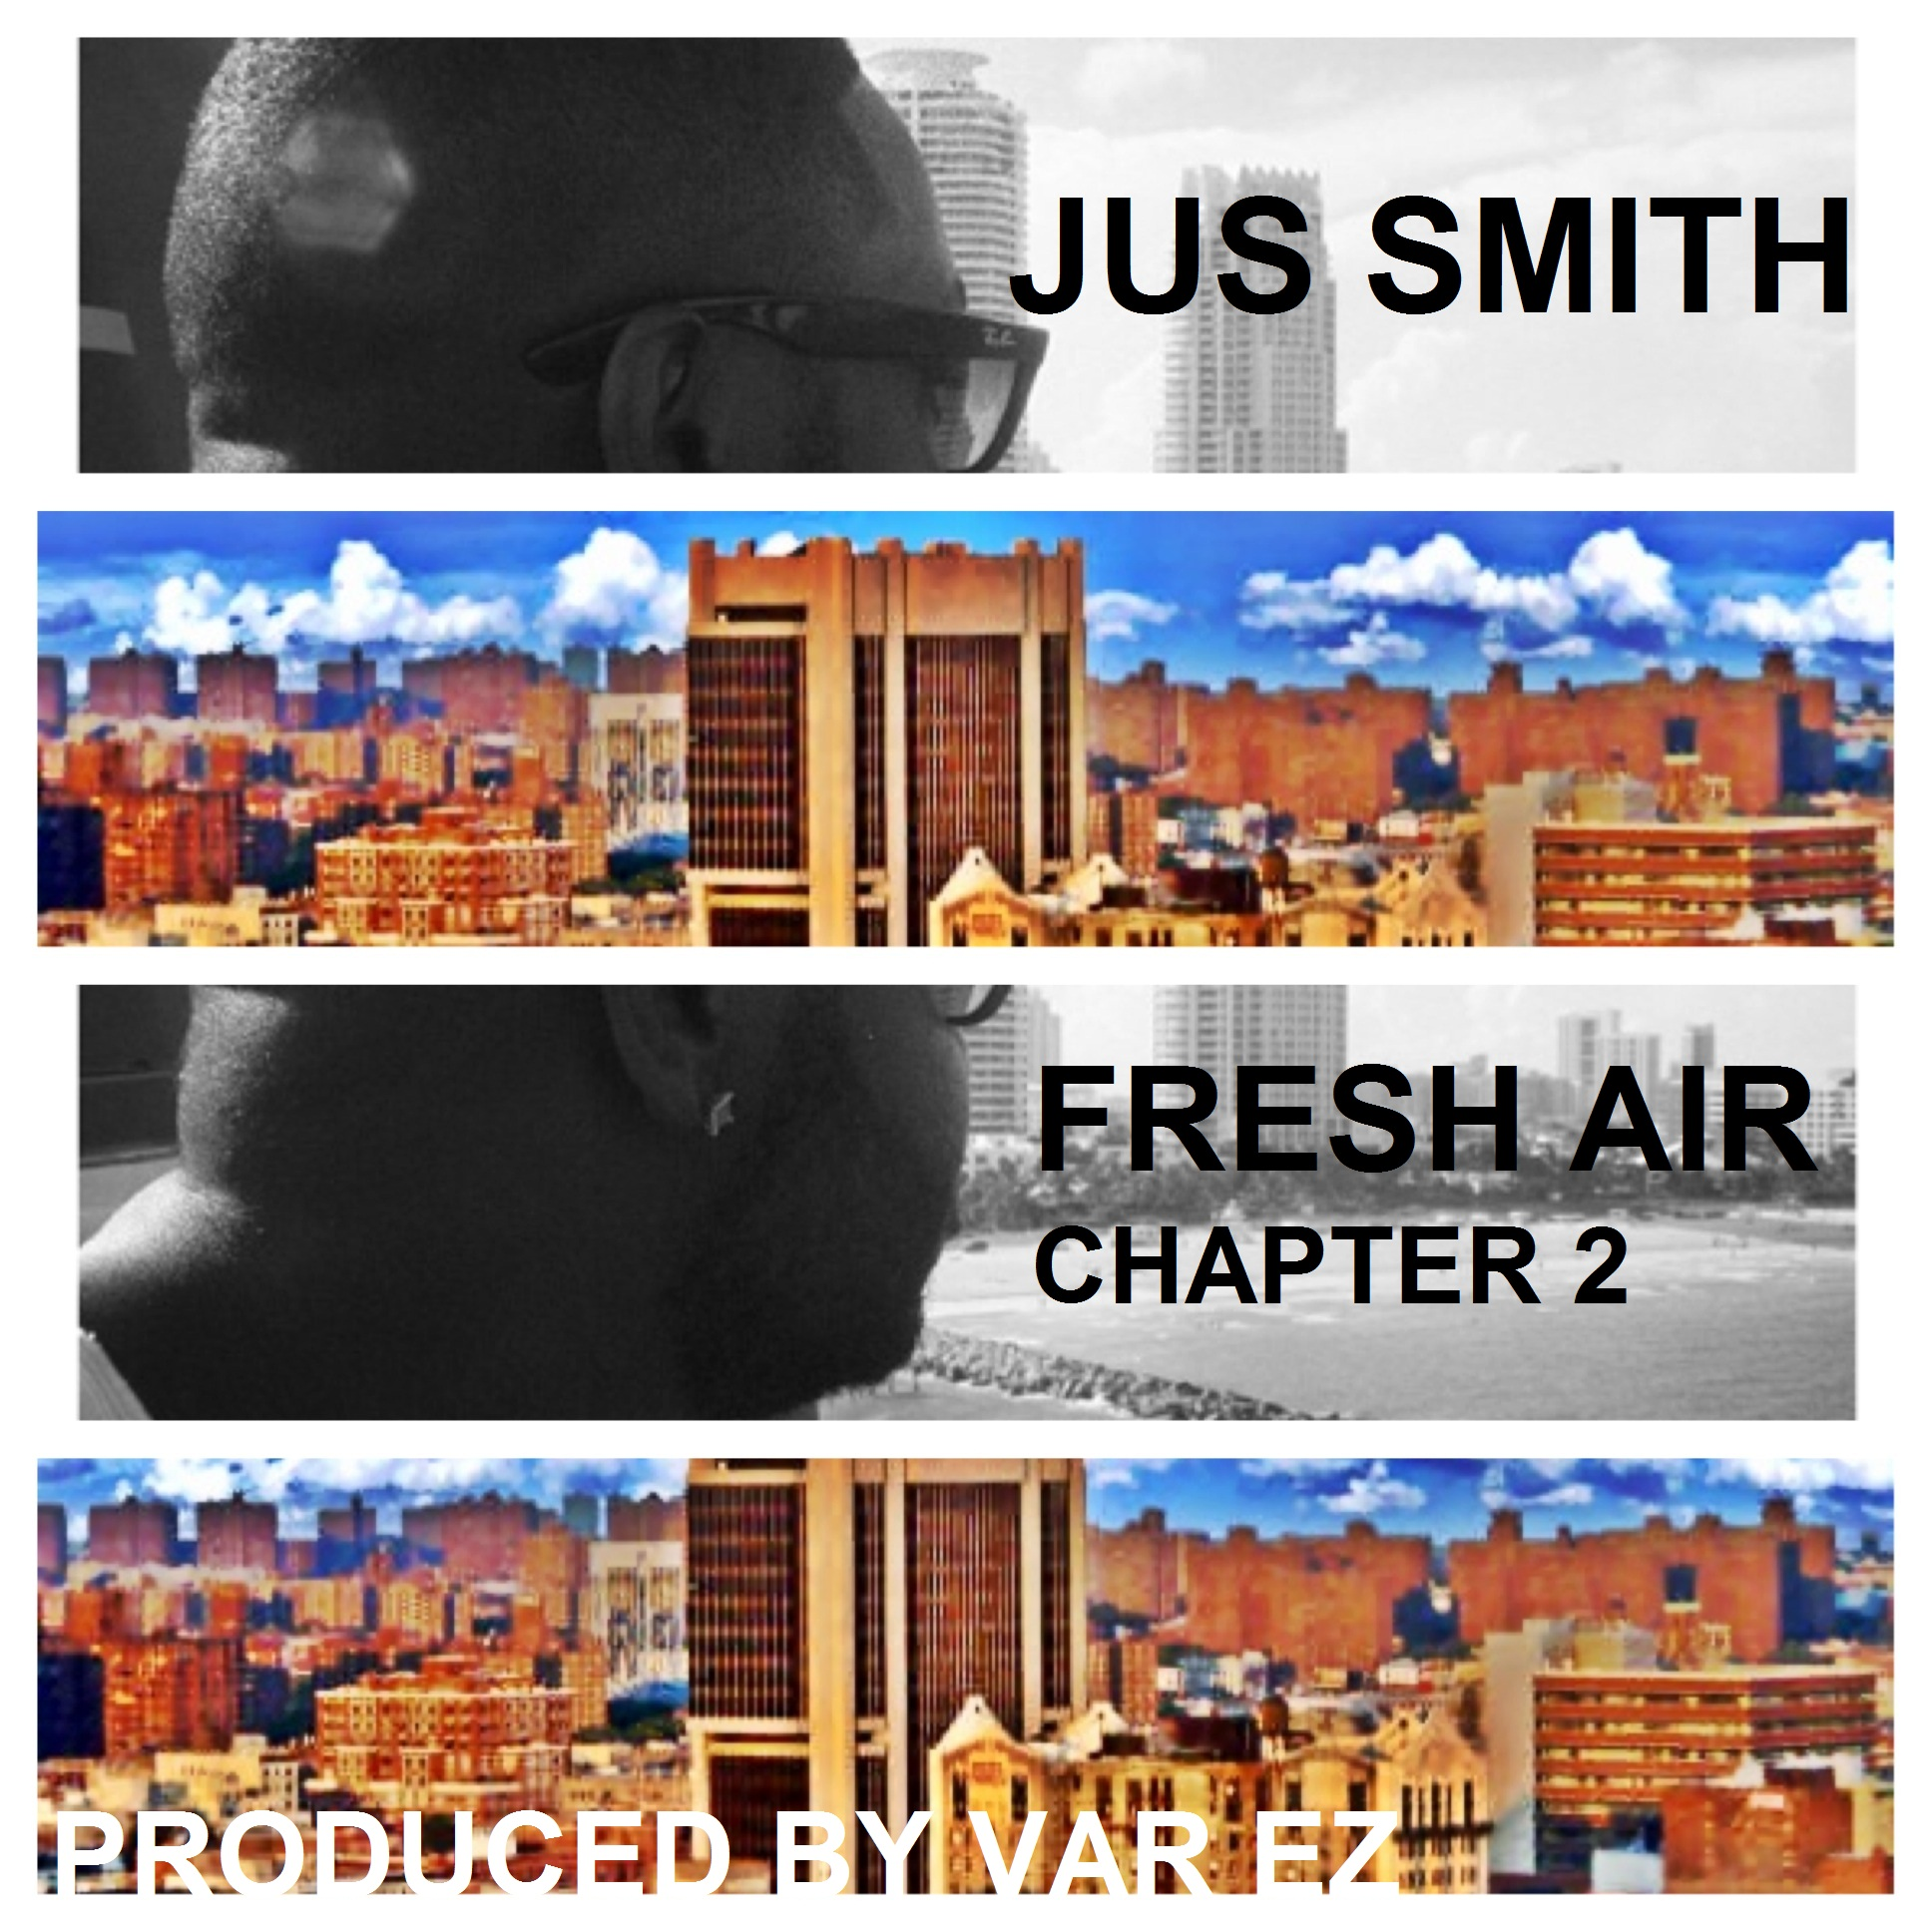 fresh air chapter 2